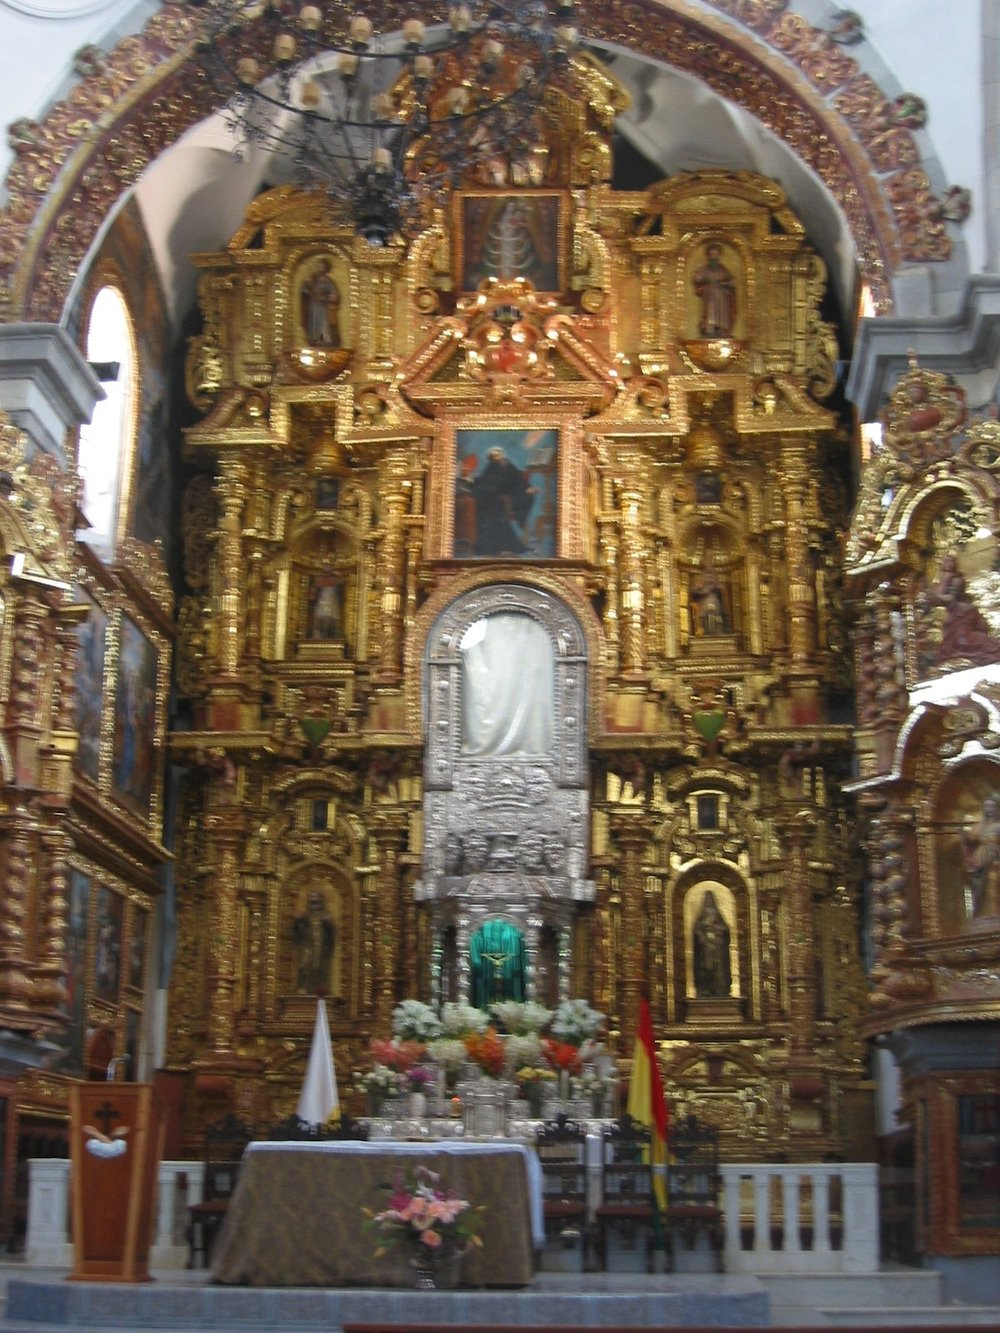 Ornate altar in the Basilica